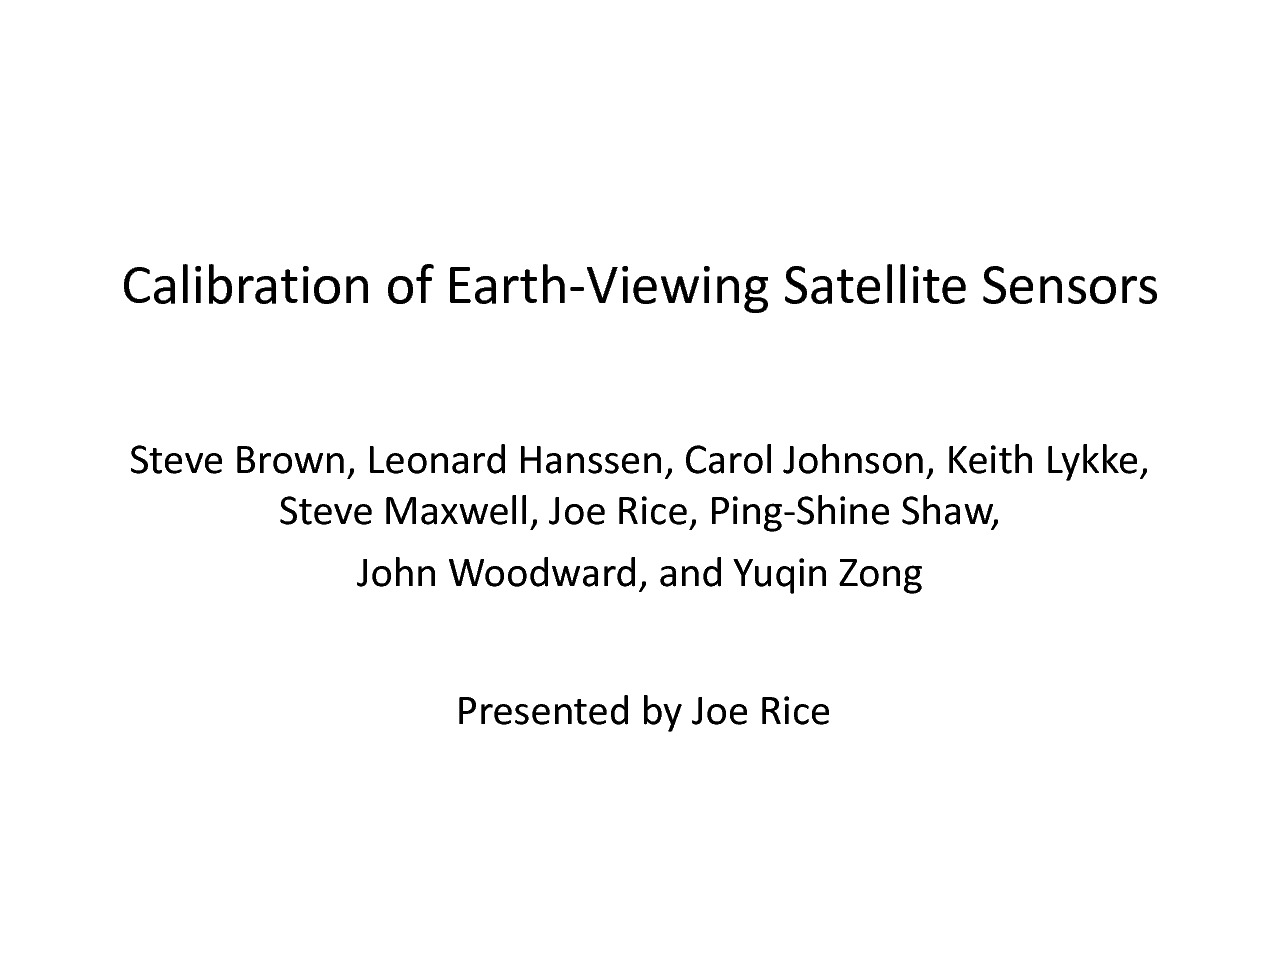 thumbnail of Calibration_of_Earth-Viewing_Satellite_Sensors